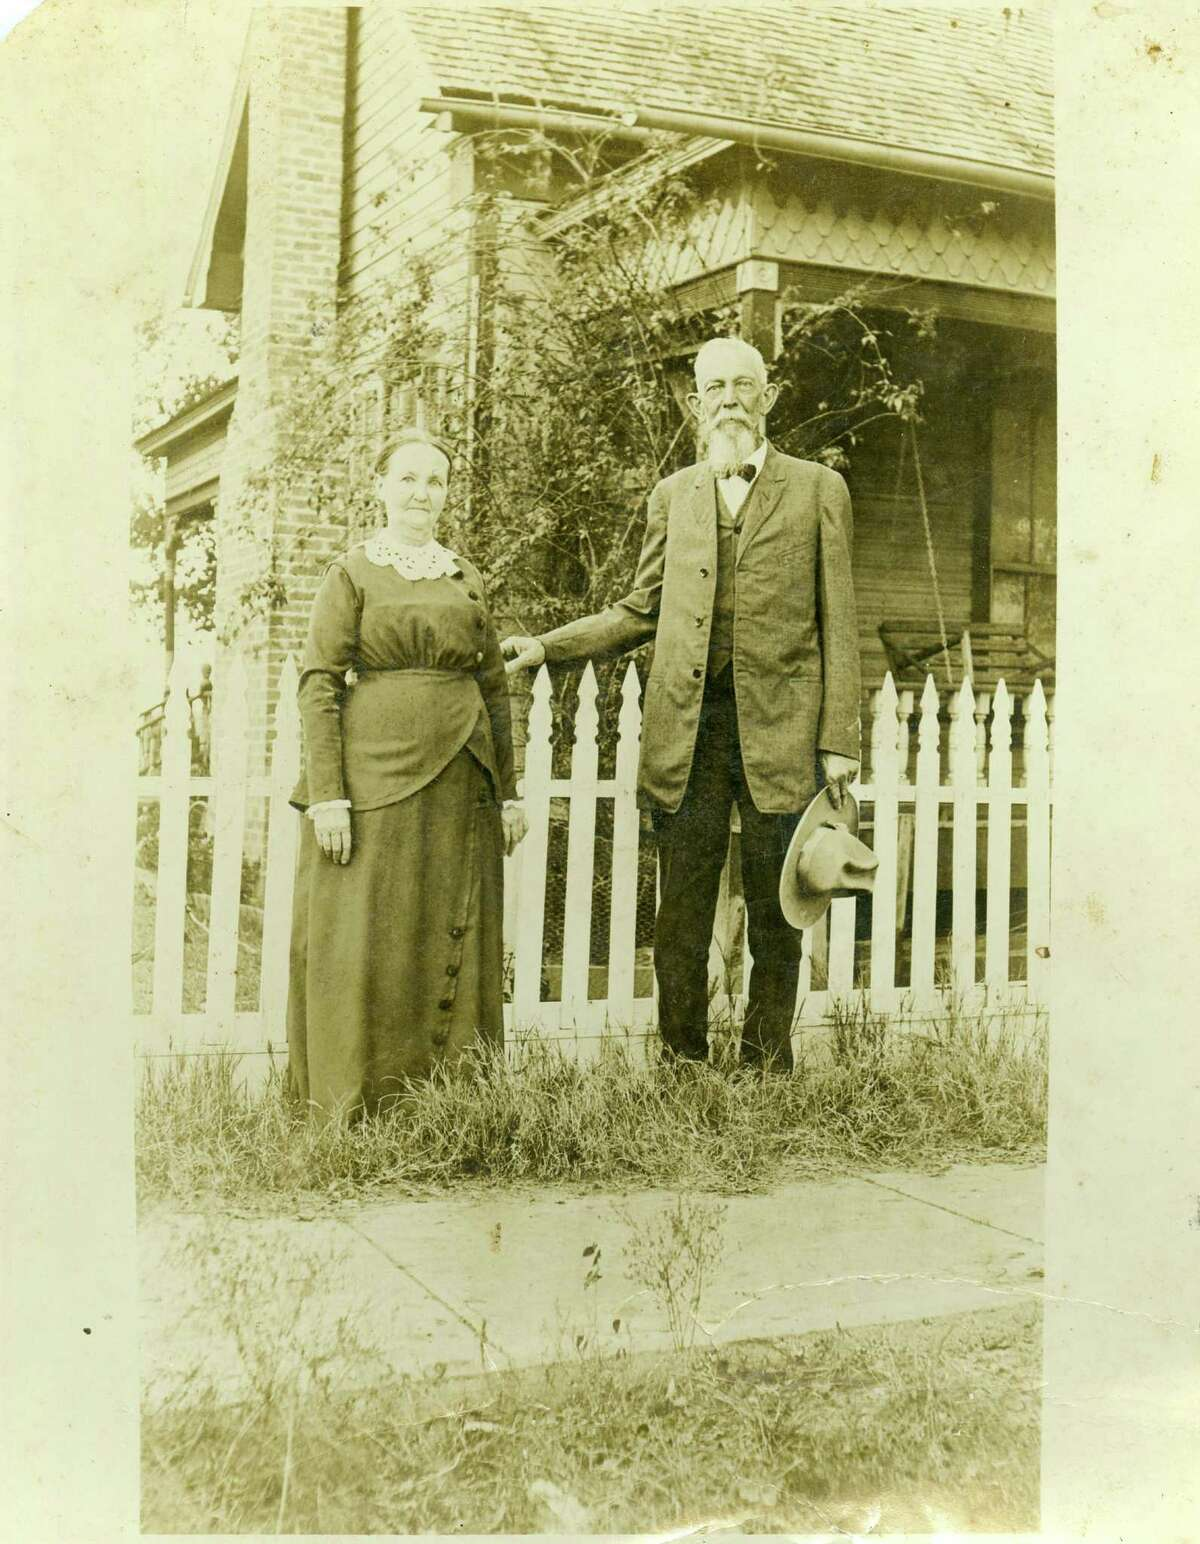 Augustus and Lizzie Landrum Tomlinson stand outside their home in Lott, Texas, circa 1925. He was the son of James K. Tomlinson, founder of the Tomlinson Hill plantation.